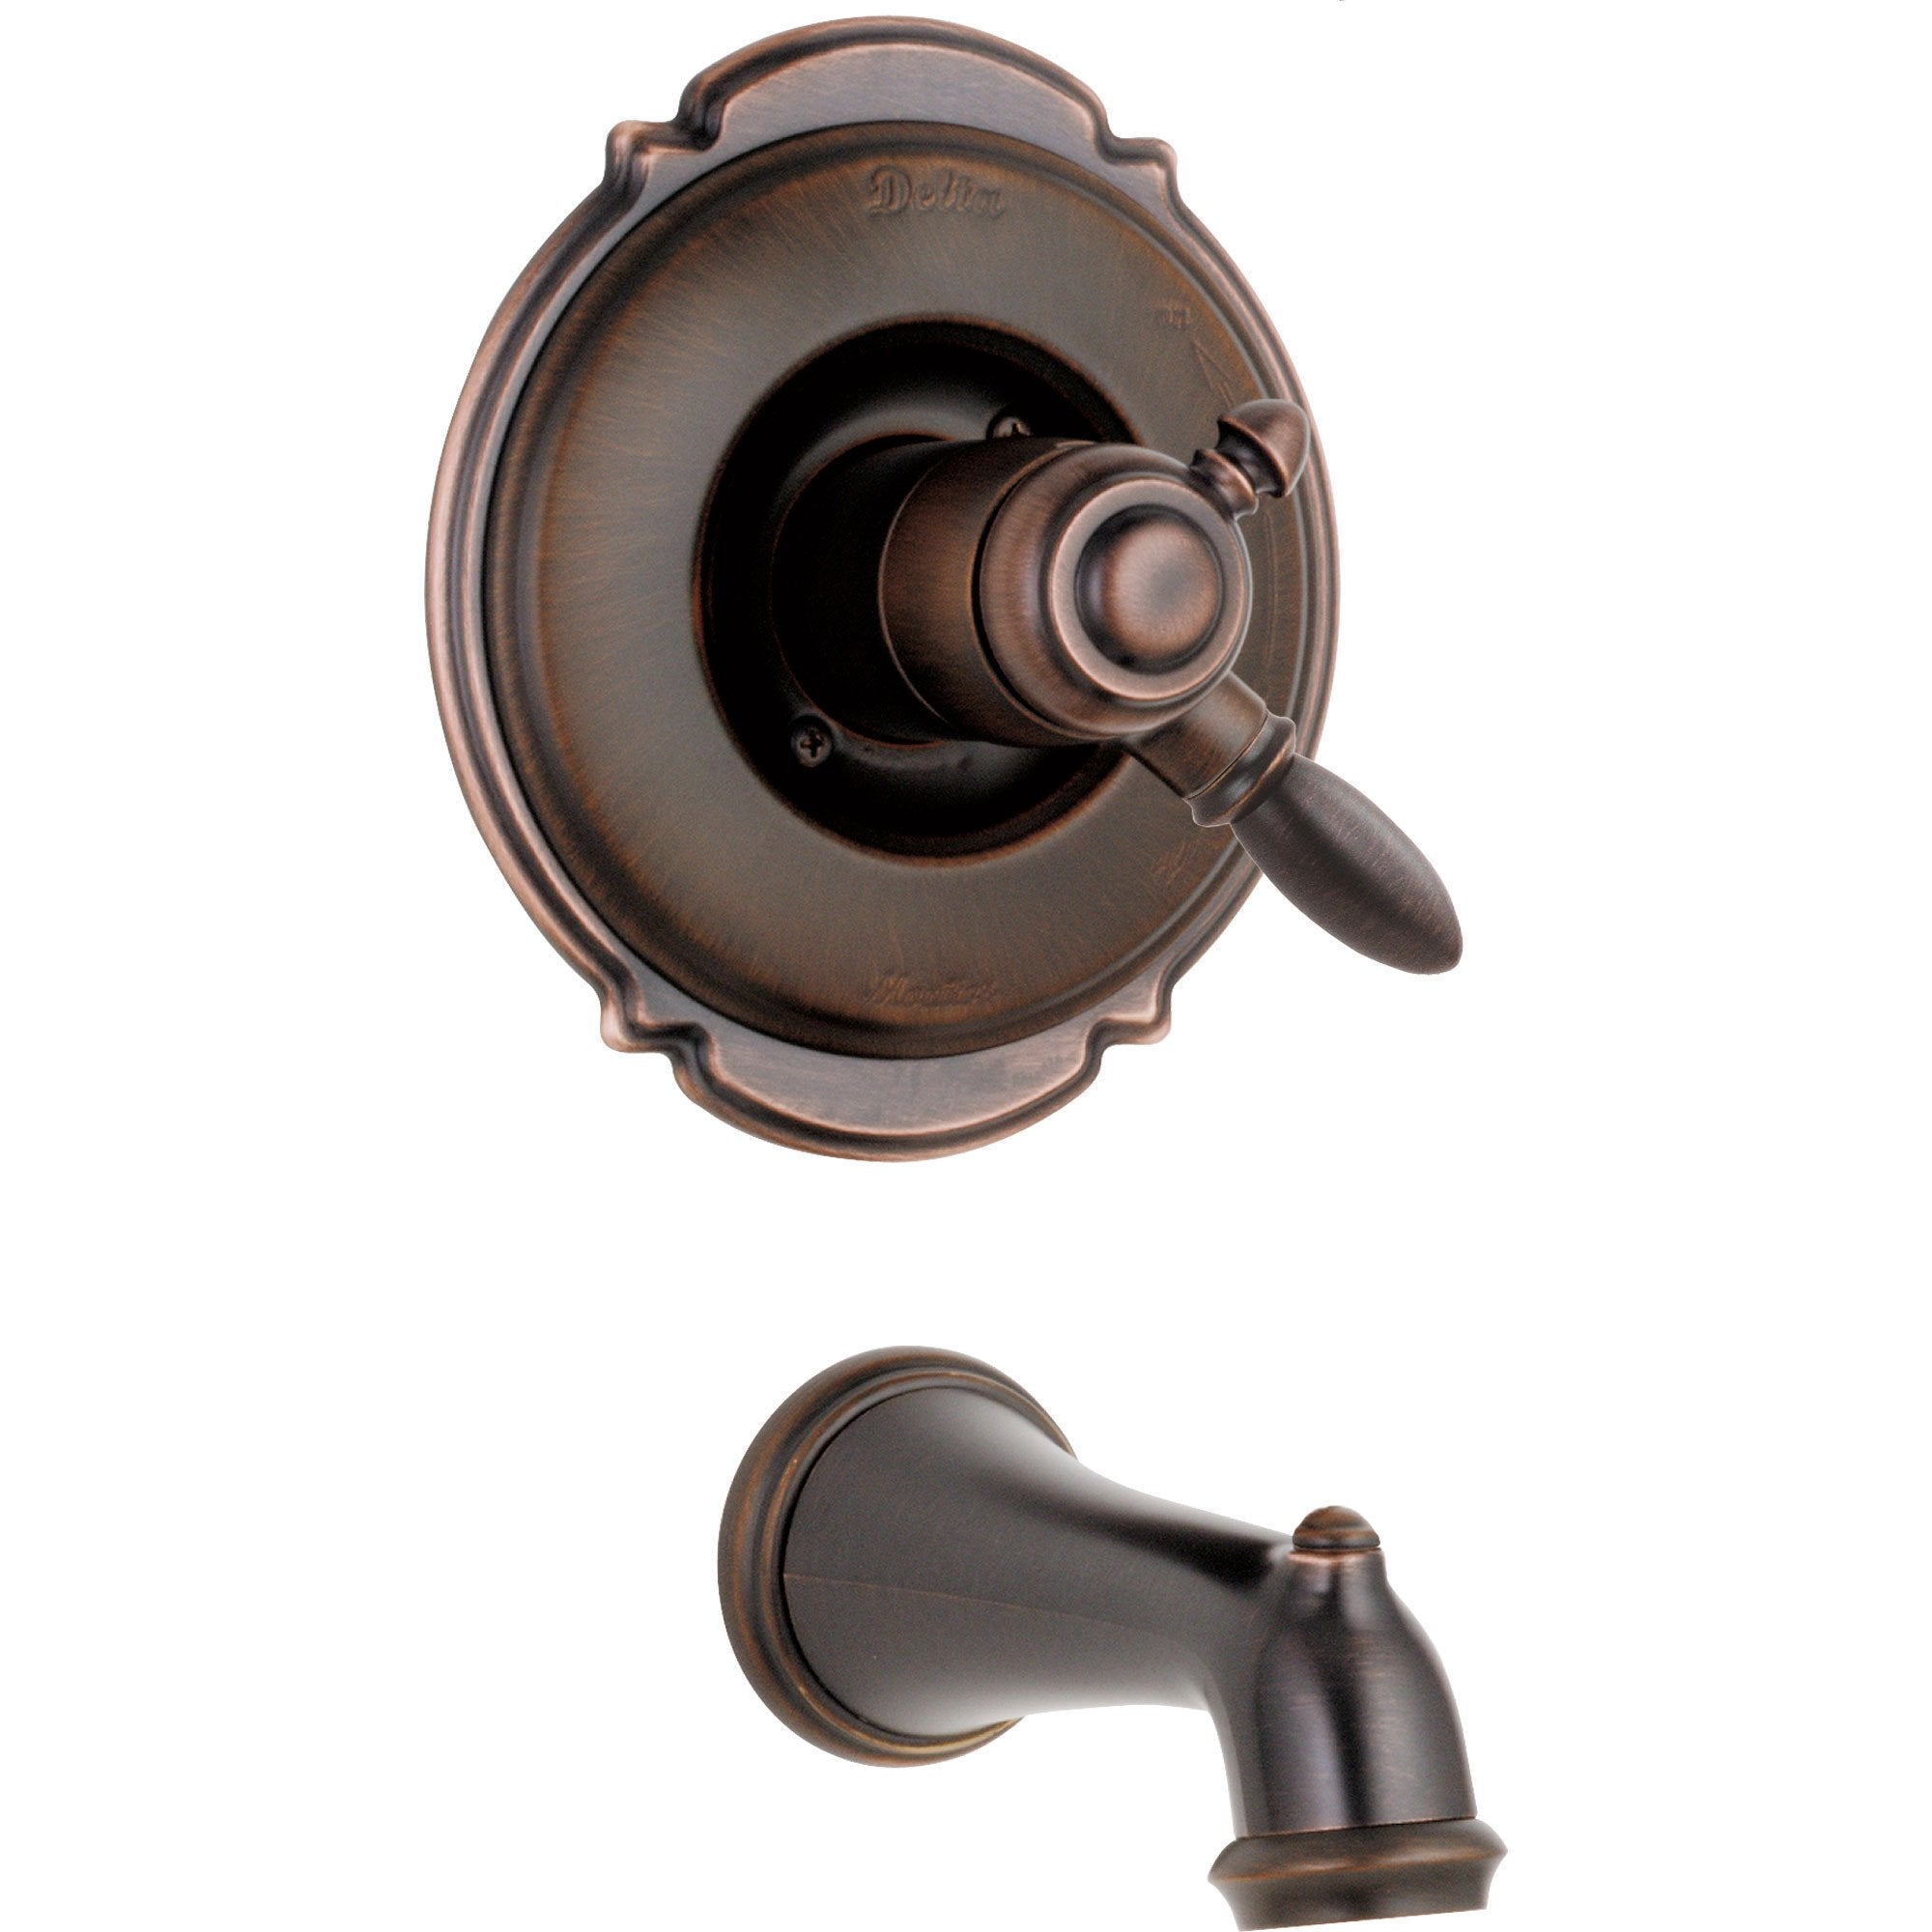 Delta Victorian Venetian Bronze Temp/Volume Control Tub Filler with Valve D225V